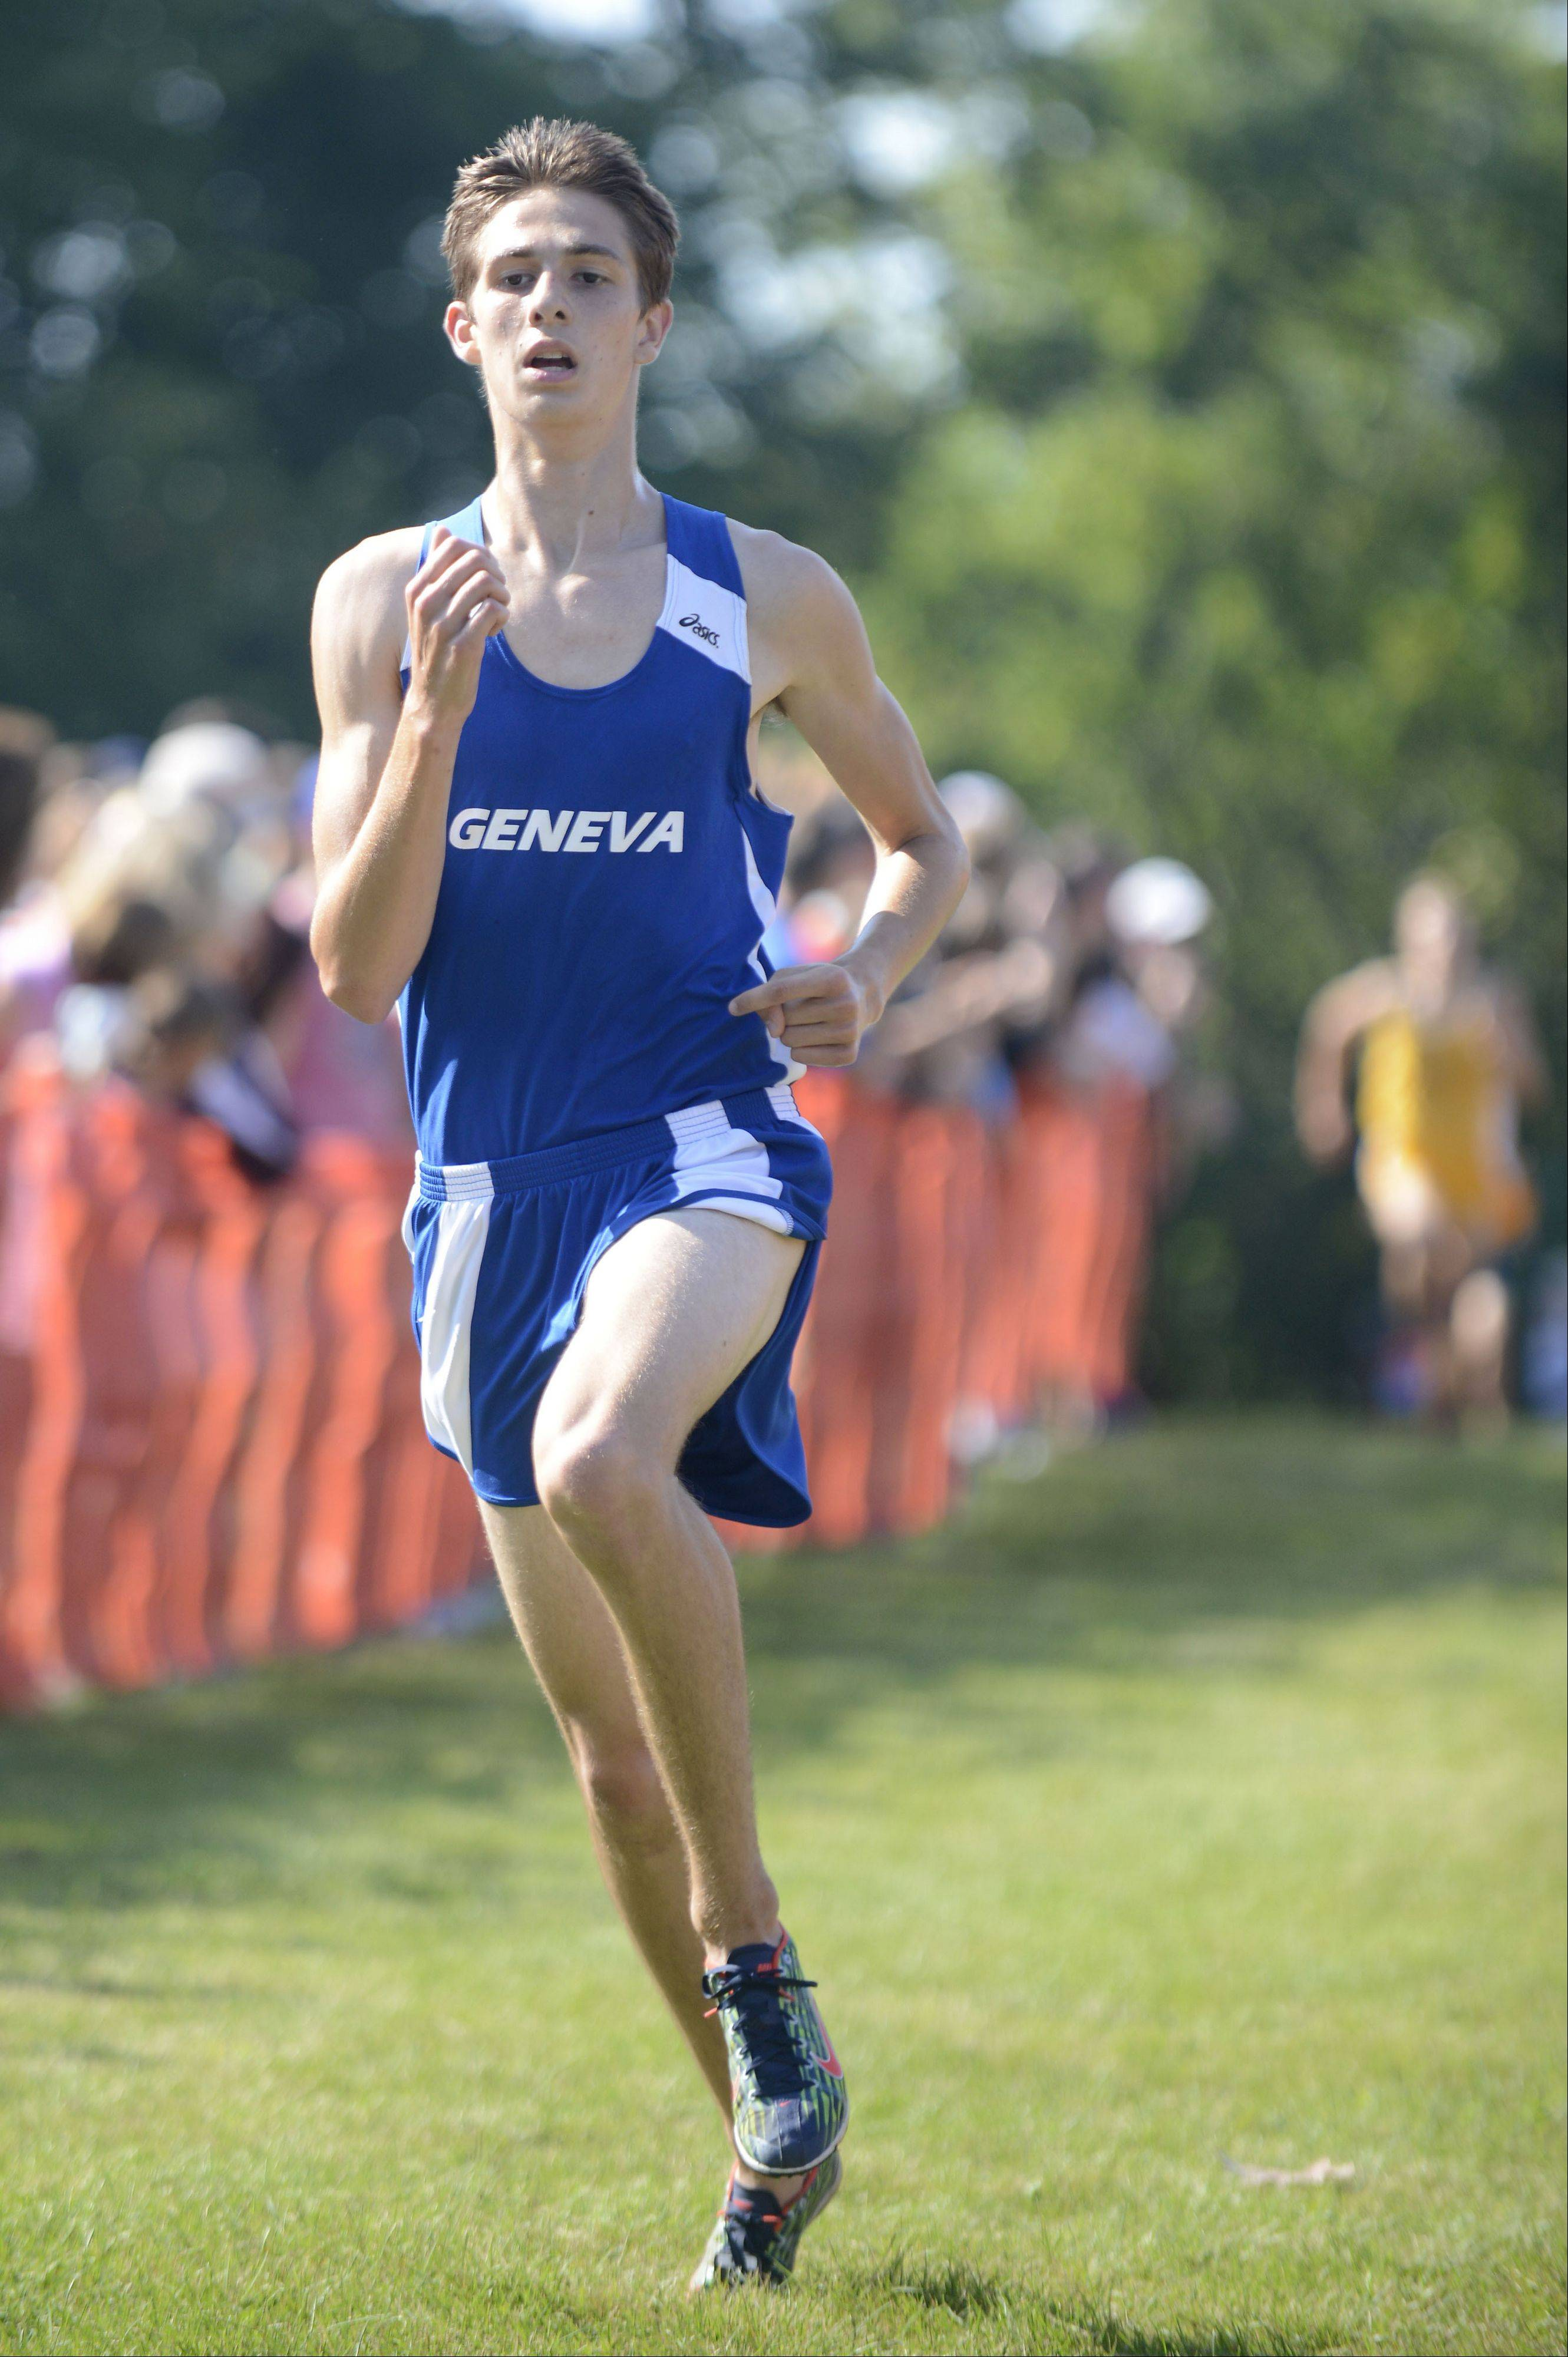 Geneva�s Blaine Bartel nears the finish line in the meet at Leroy Oakes Forest Preserve in St. Charles on Saturday, September 7.